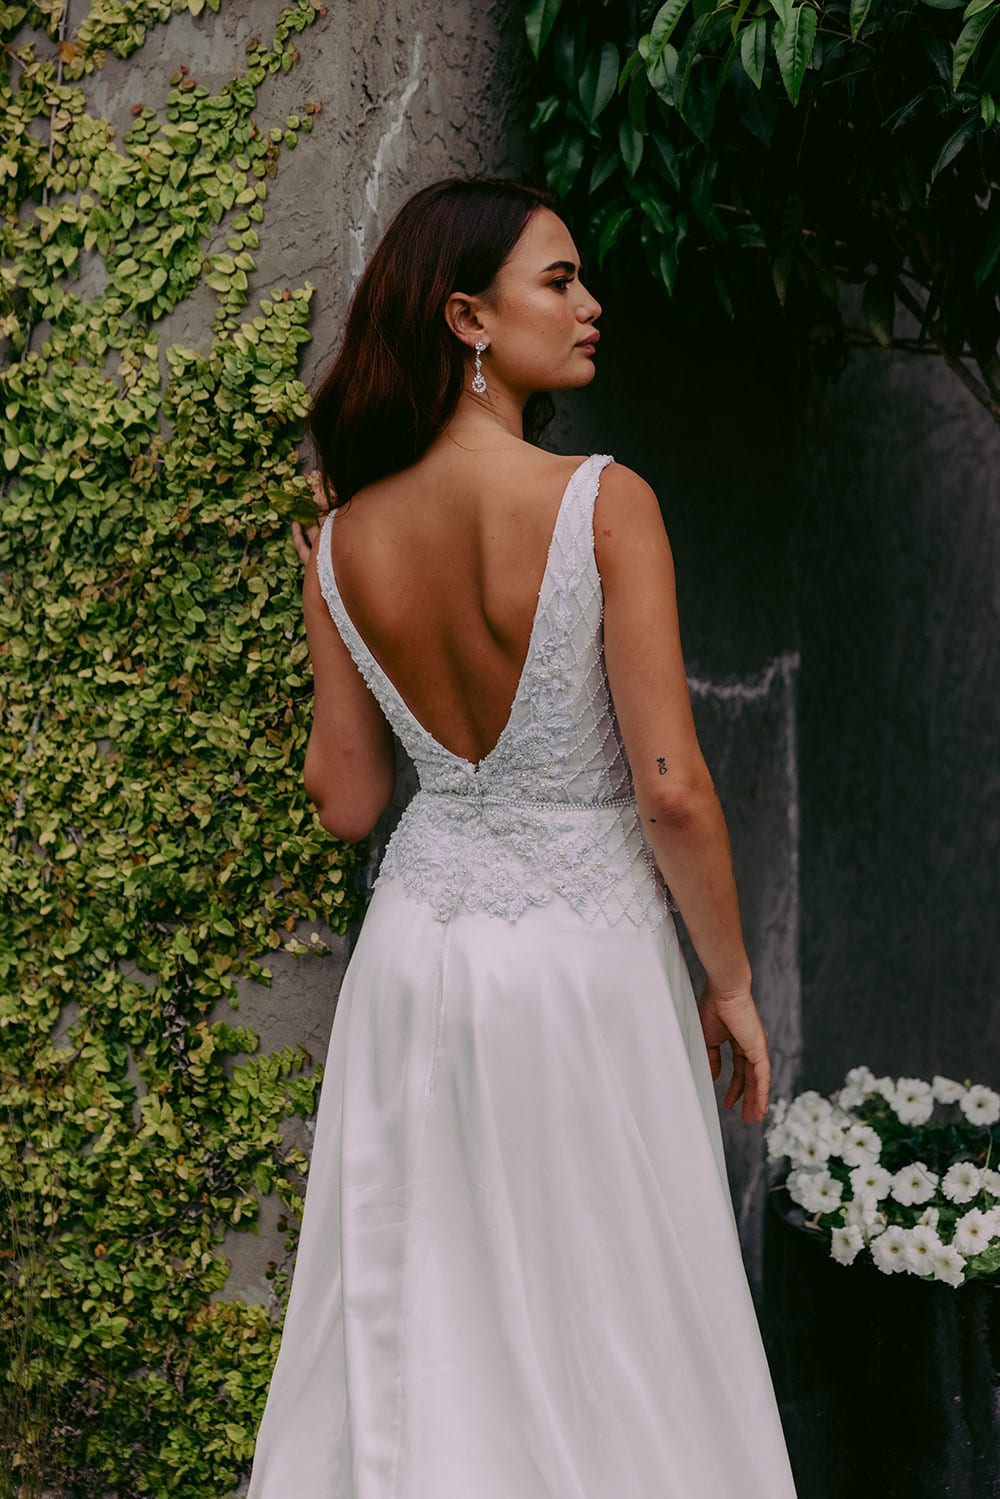 Reihana Wedding gown from Vinka Design - This stunning wedding dress features beautiful hand-appliqued beaded lace, a V-shaped neckline and low V-shaped back. The skirt is the epitome of elegance in dreamy silk chiffon, with an optional split. Model wearing gown showing close up of low V back of dress, outside heritage building.